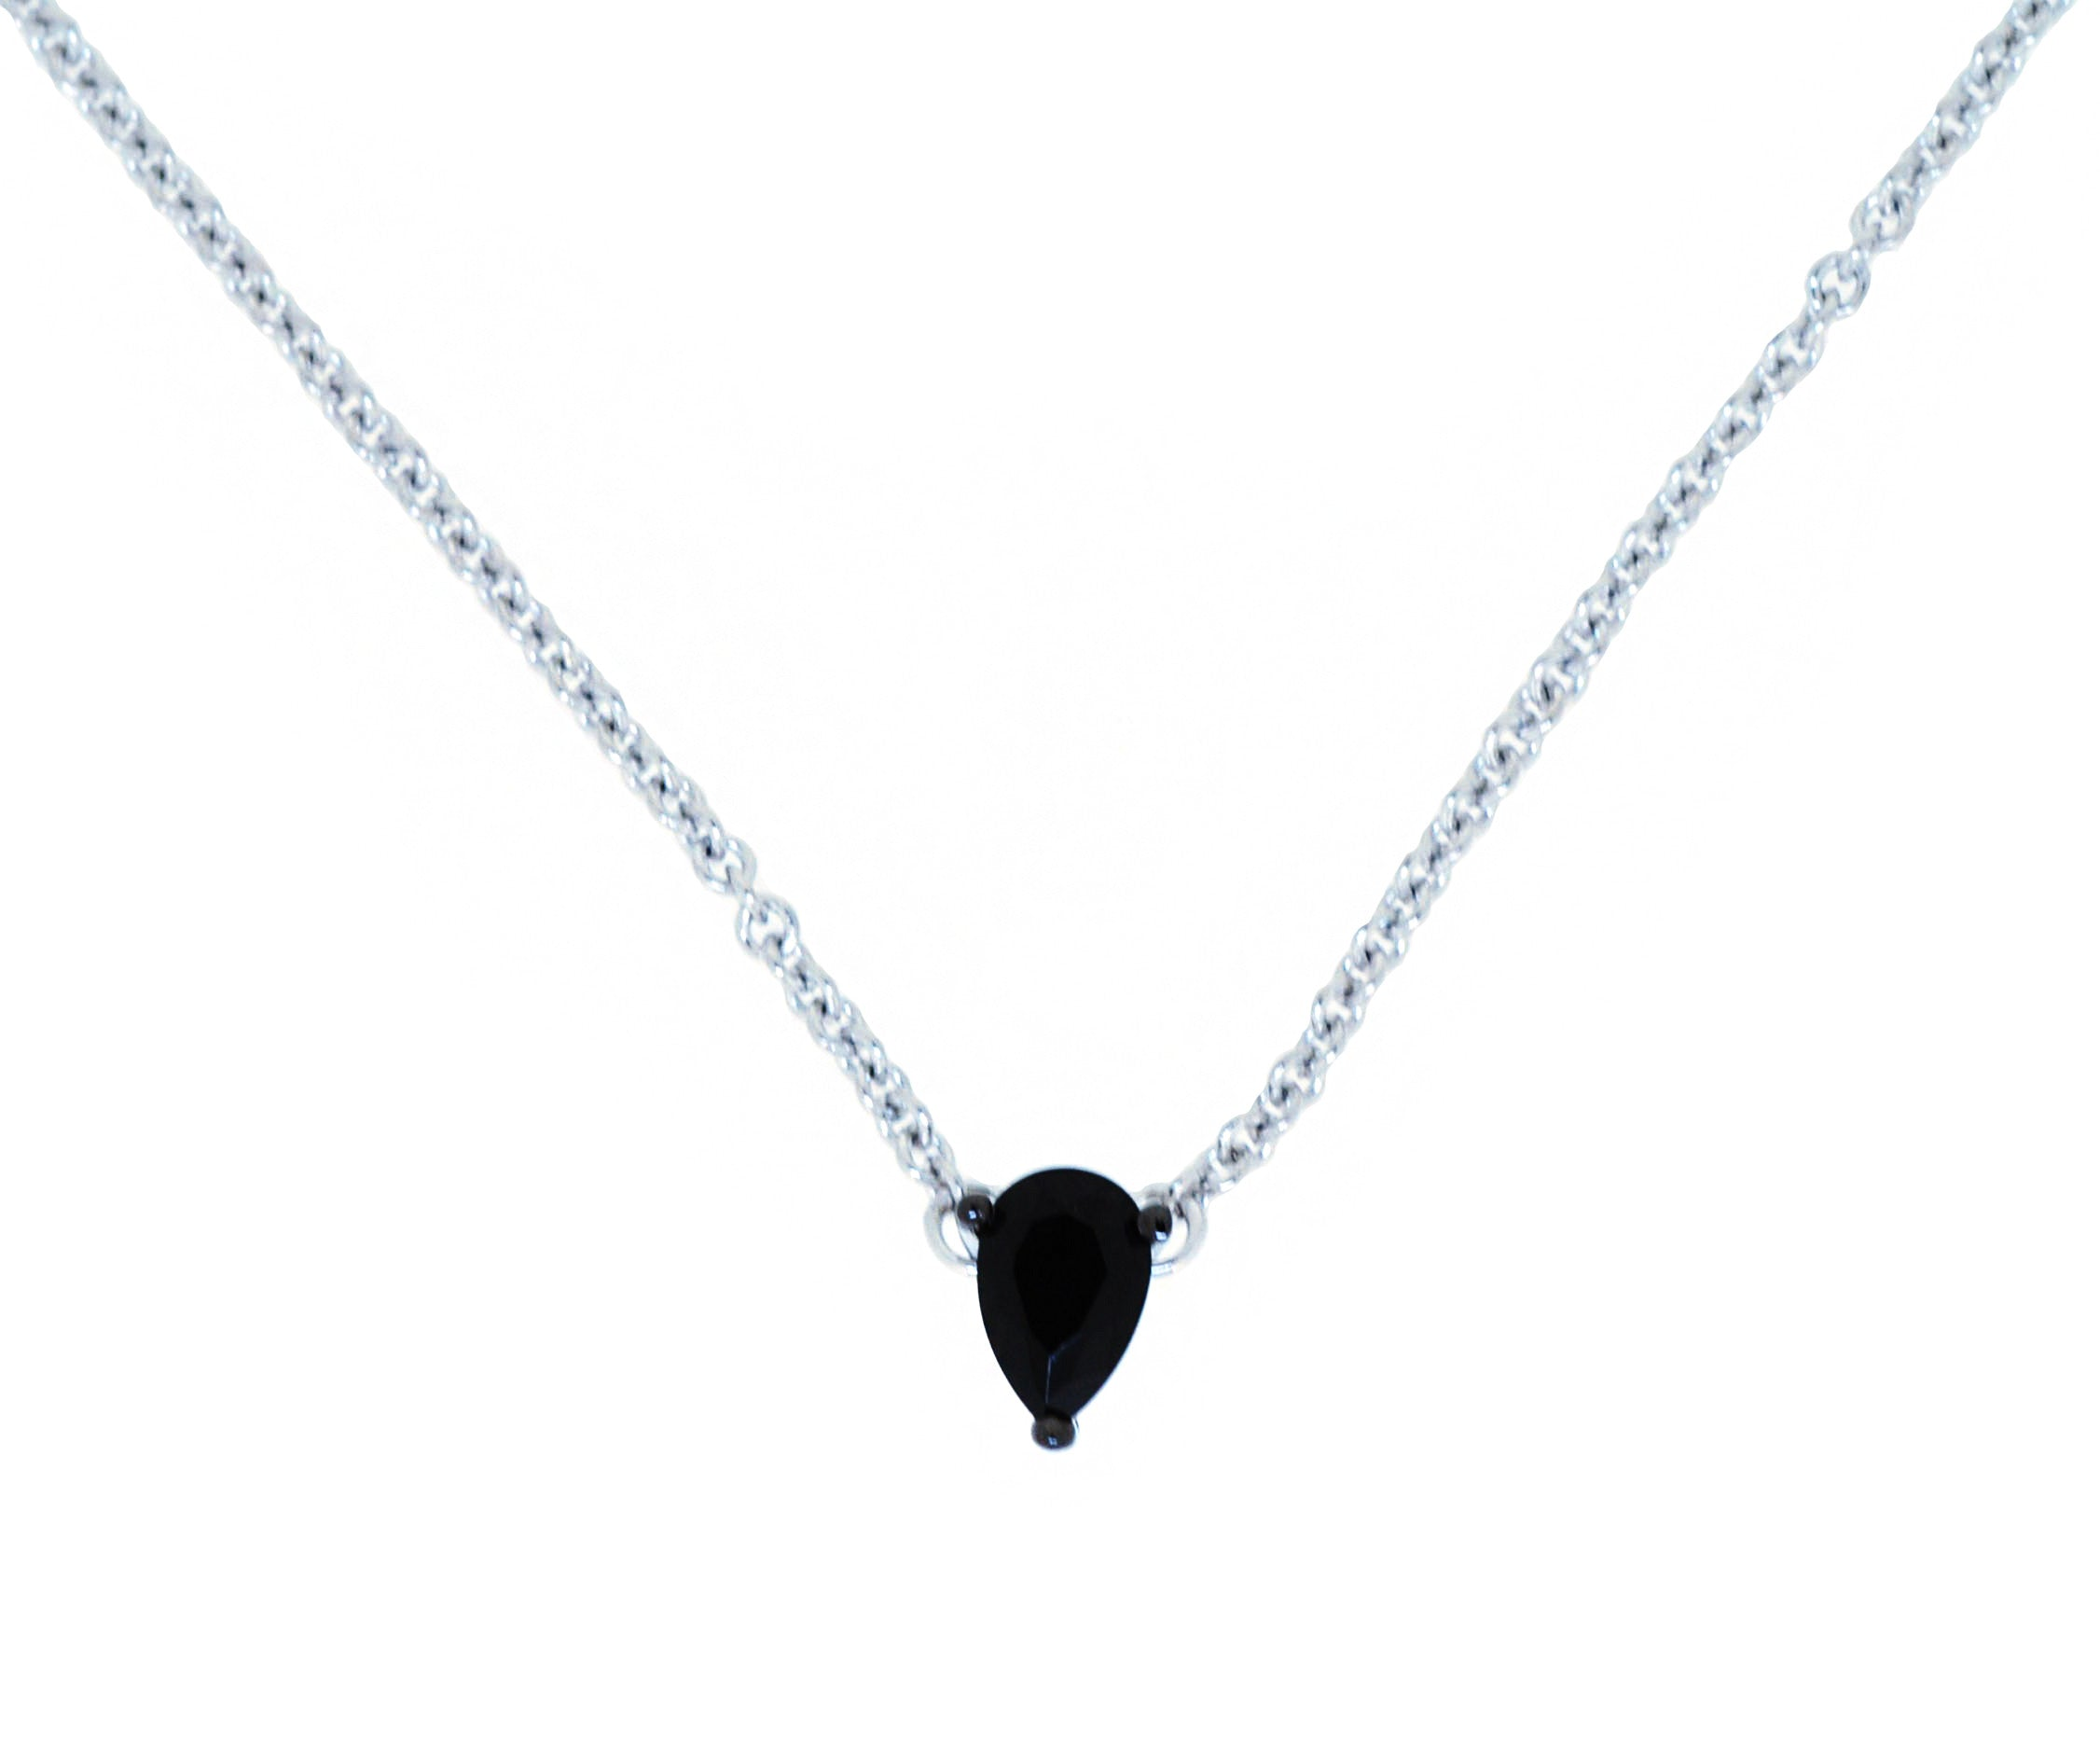 jacquelineashworth necklace gold products love silver focus sterling filled passion black calmness briolette and spinel